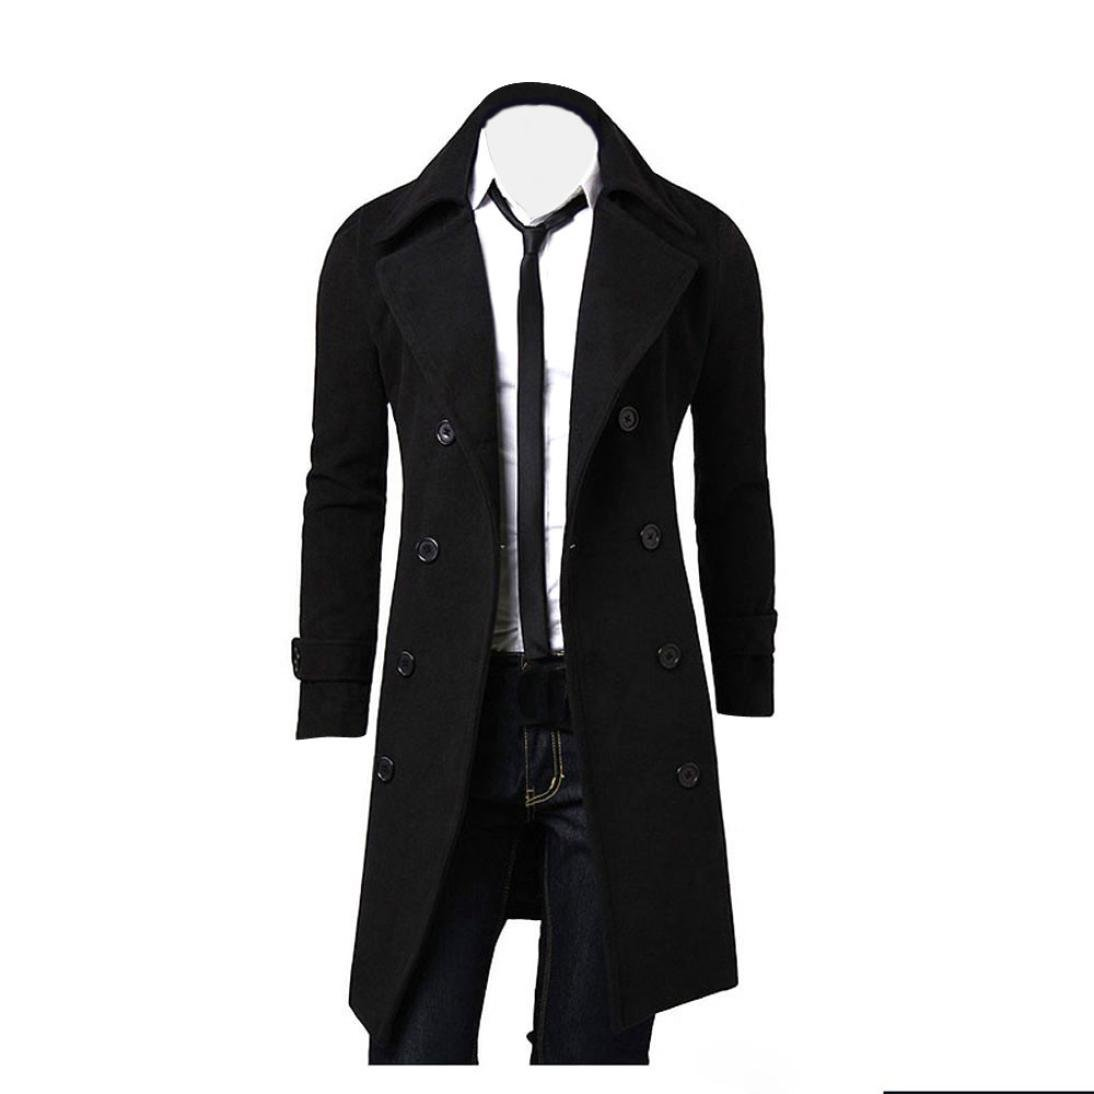 Qisc Mens Trench Coat Winter Wool Long Jacket Double Breasted Knee Length Overcoat at Amazon Mens Clothing store: